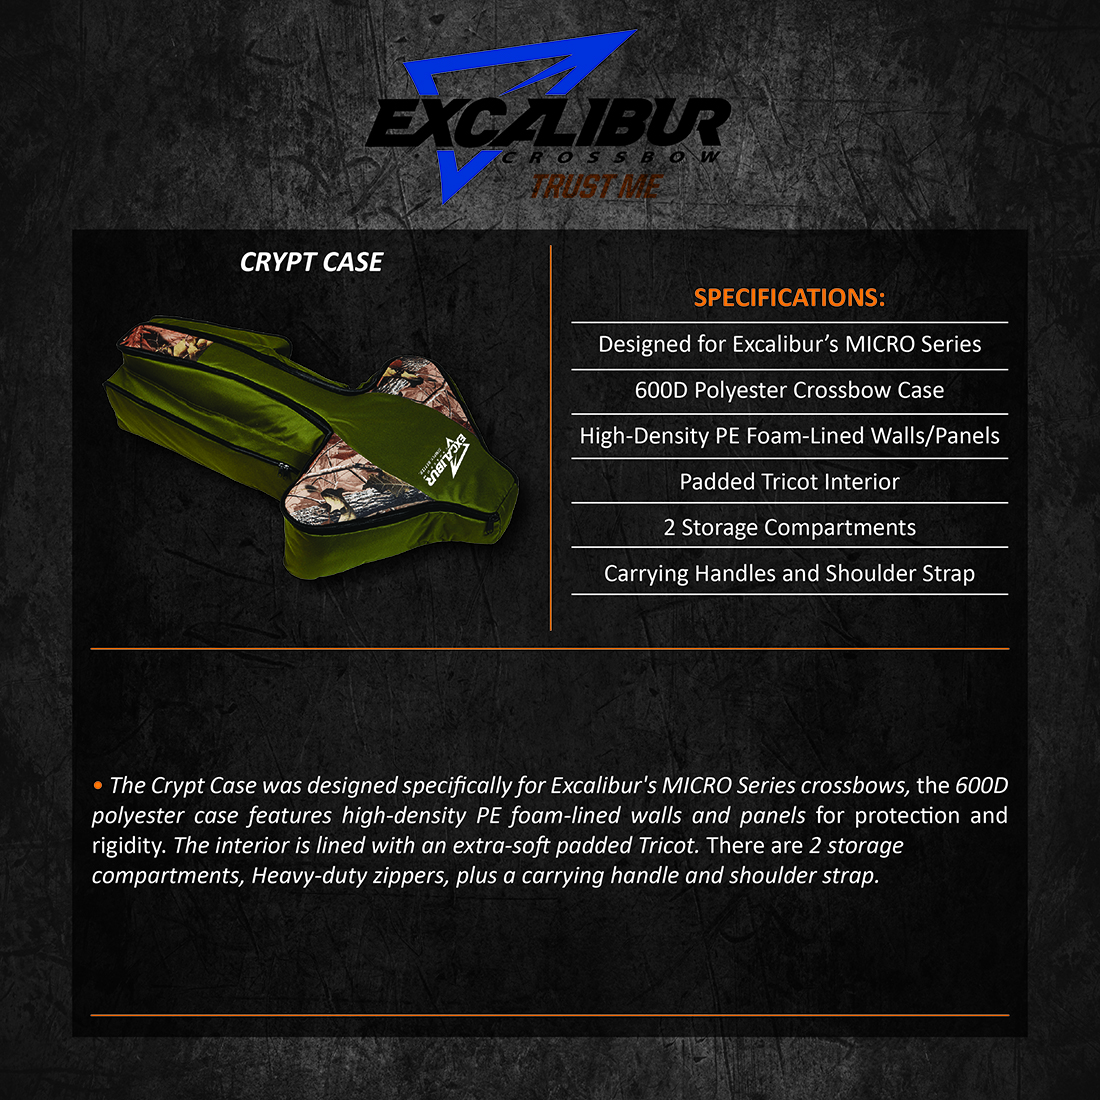 Excalibur_Crypt_Case_Product_Description